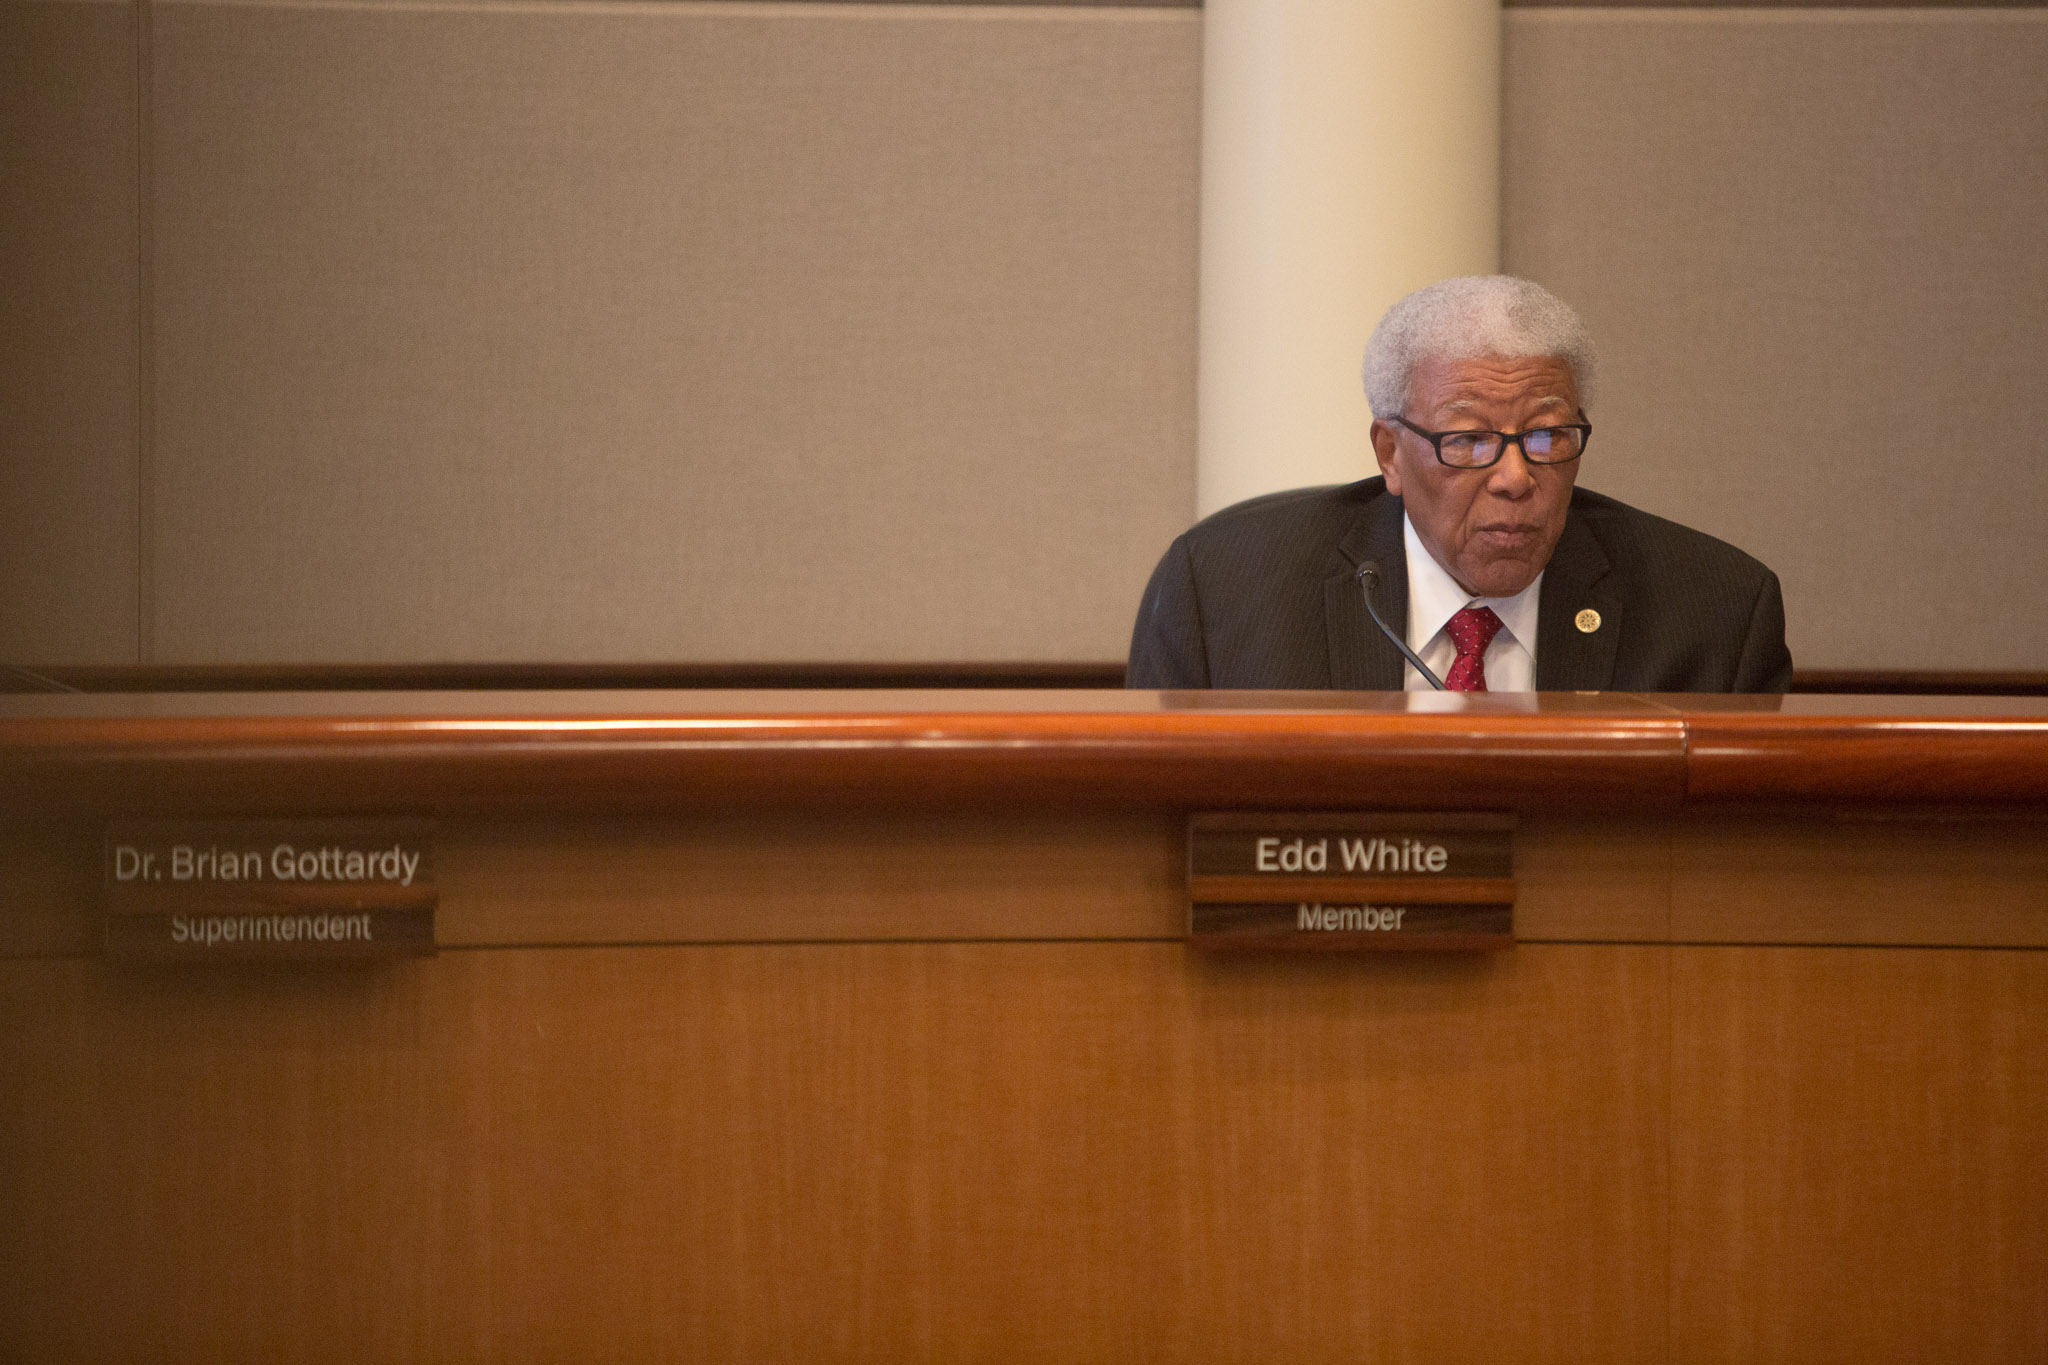 NEISD board member Edd White shares his view on the distinction between Lee and L.E.E.